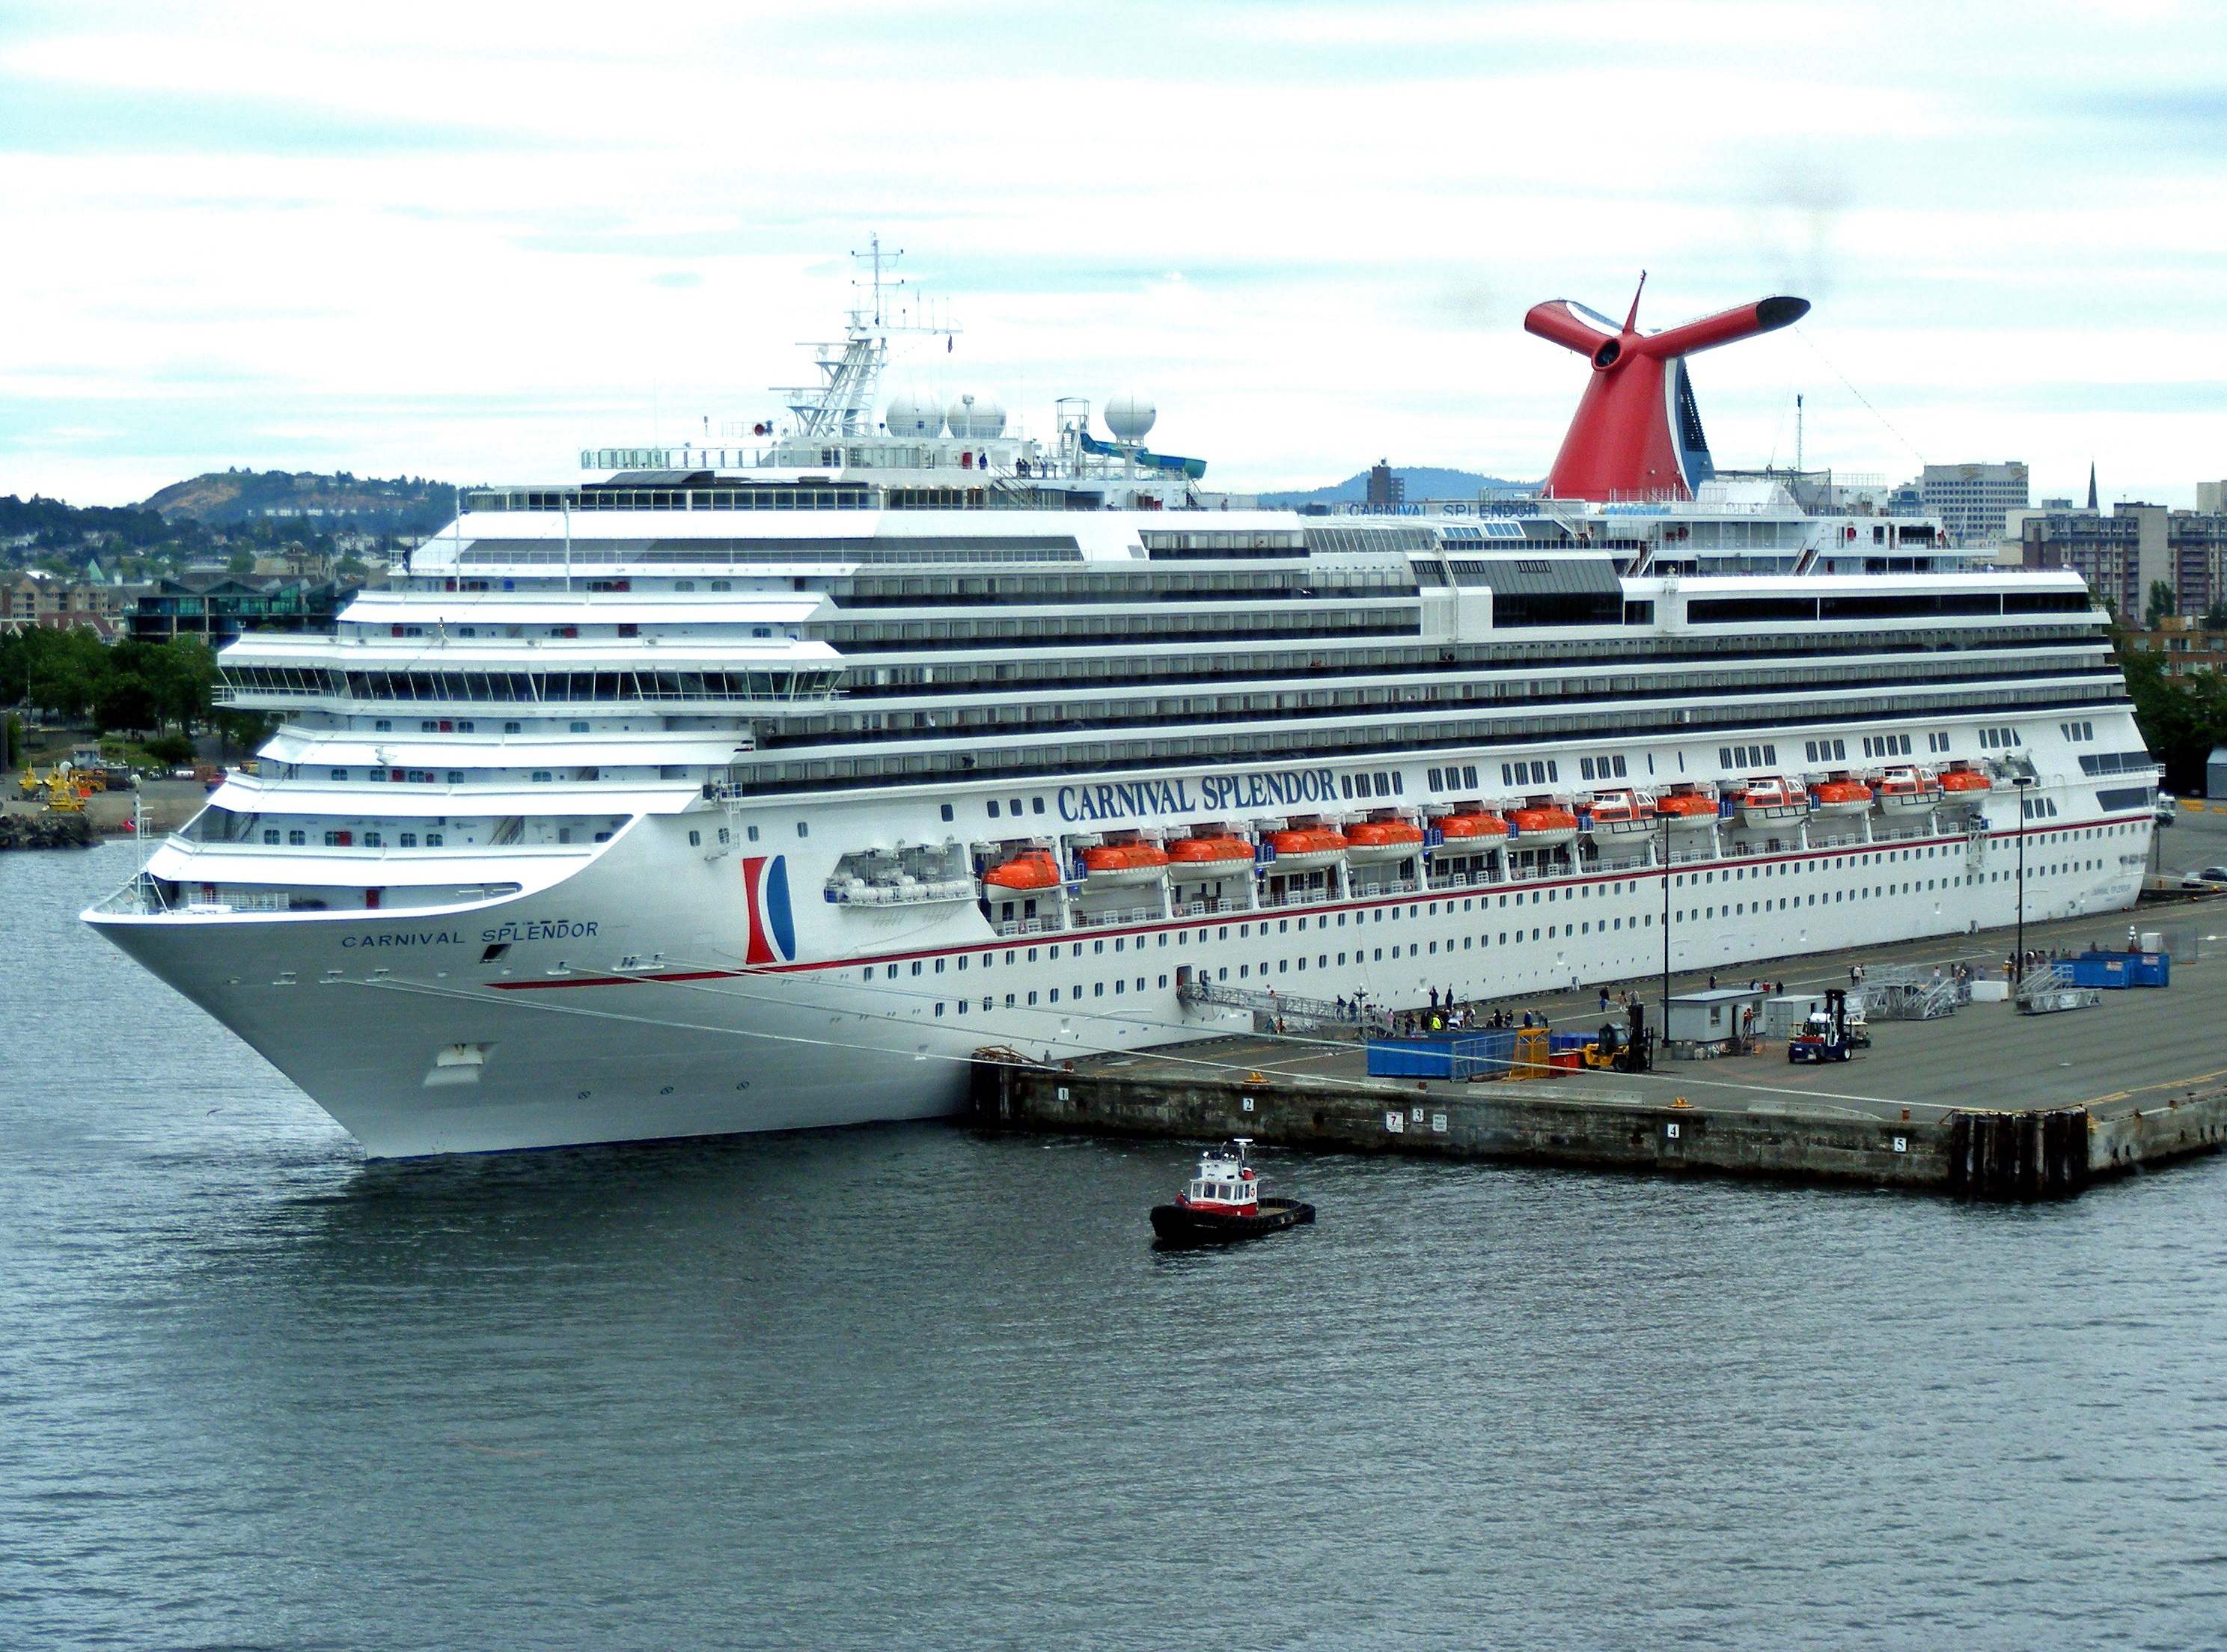 carnival cruises essay Business case study analysis, solution - royal caribbean cruise line ltd.